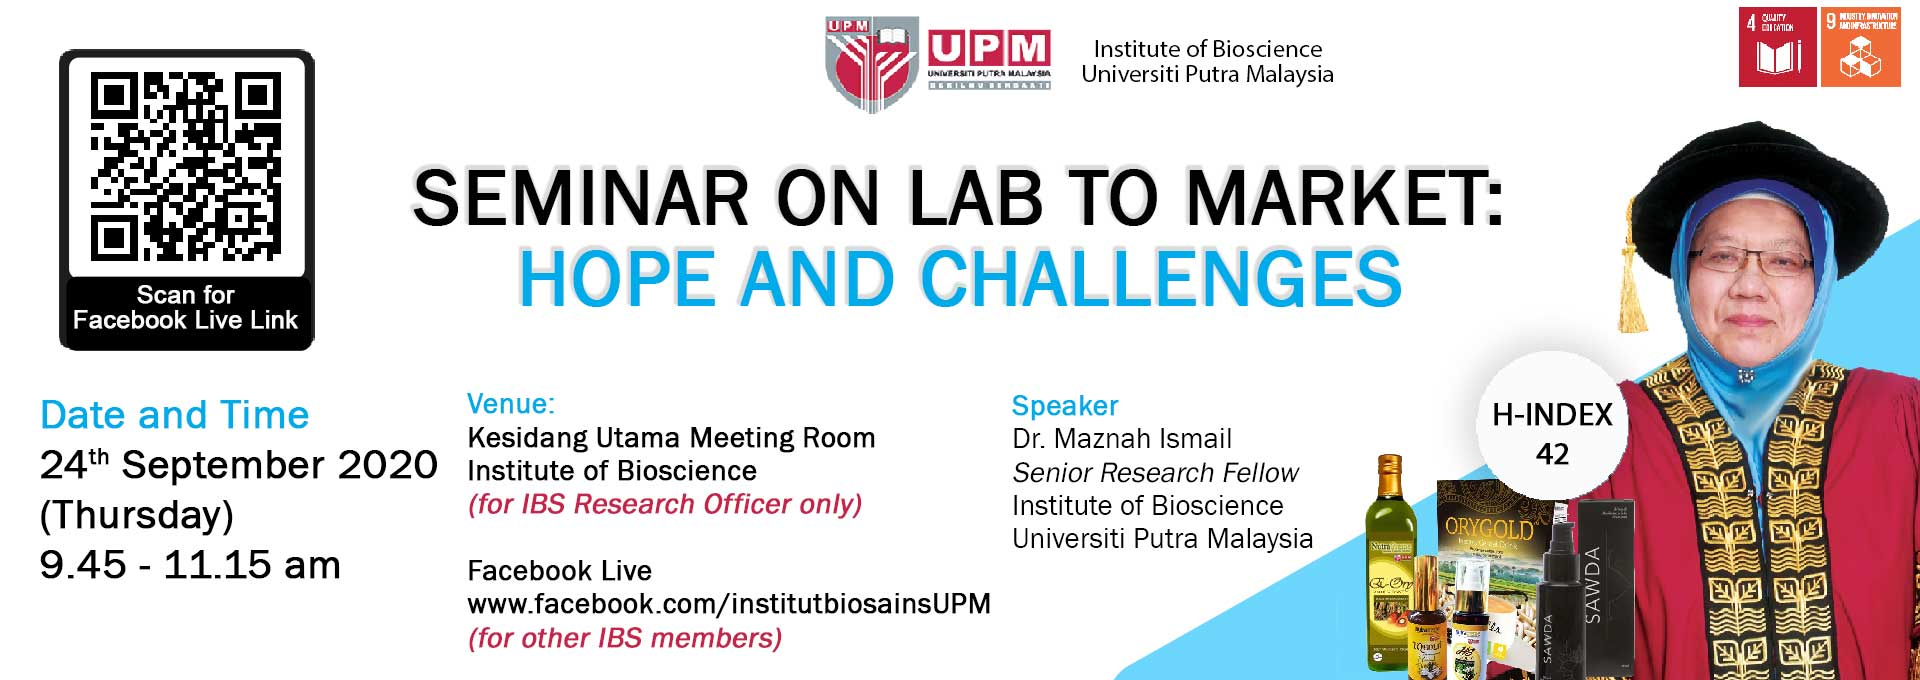 Seminar on Lab to Market : Hopes & Challenges